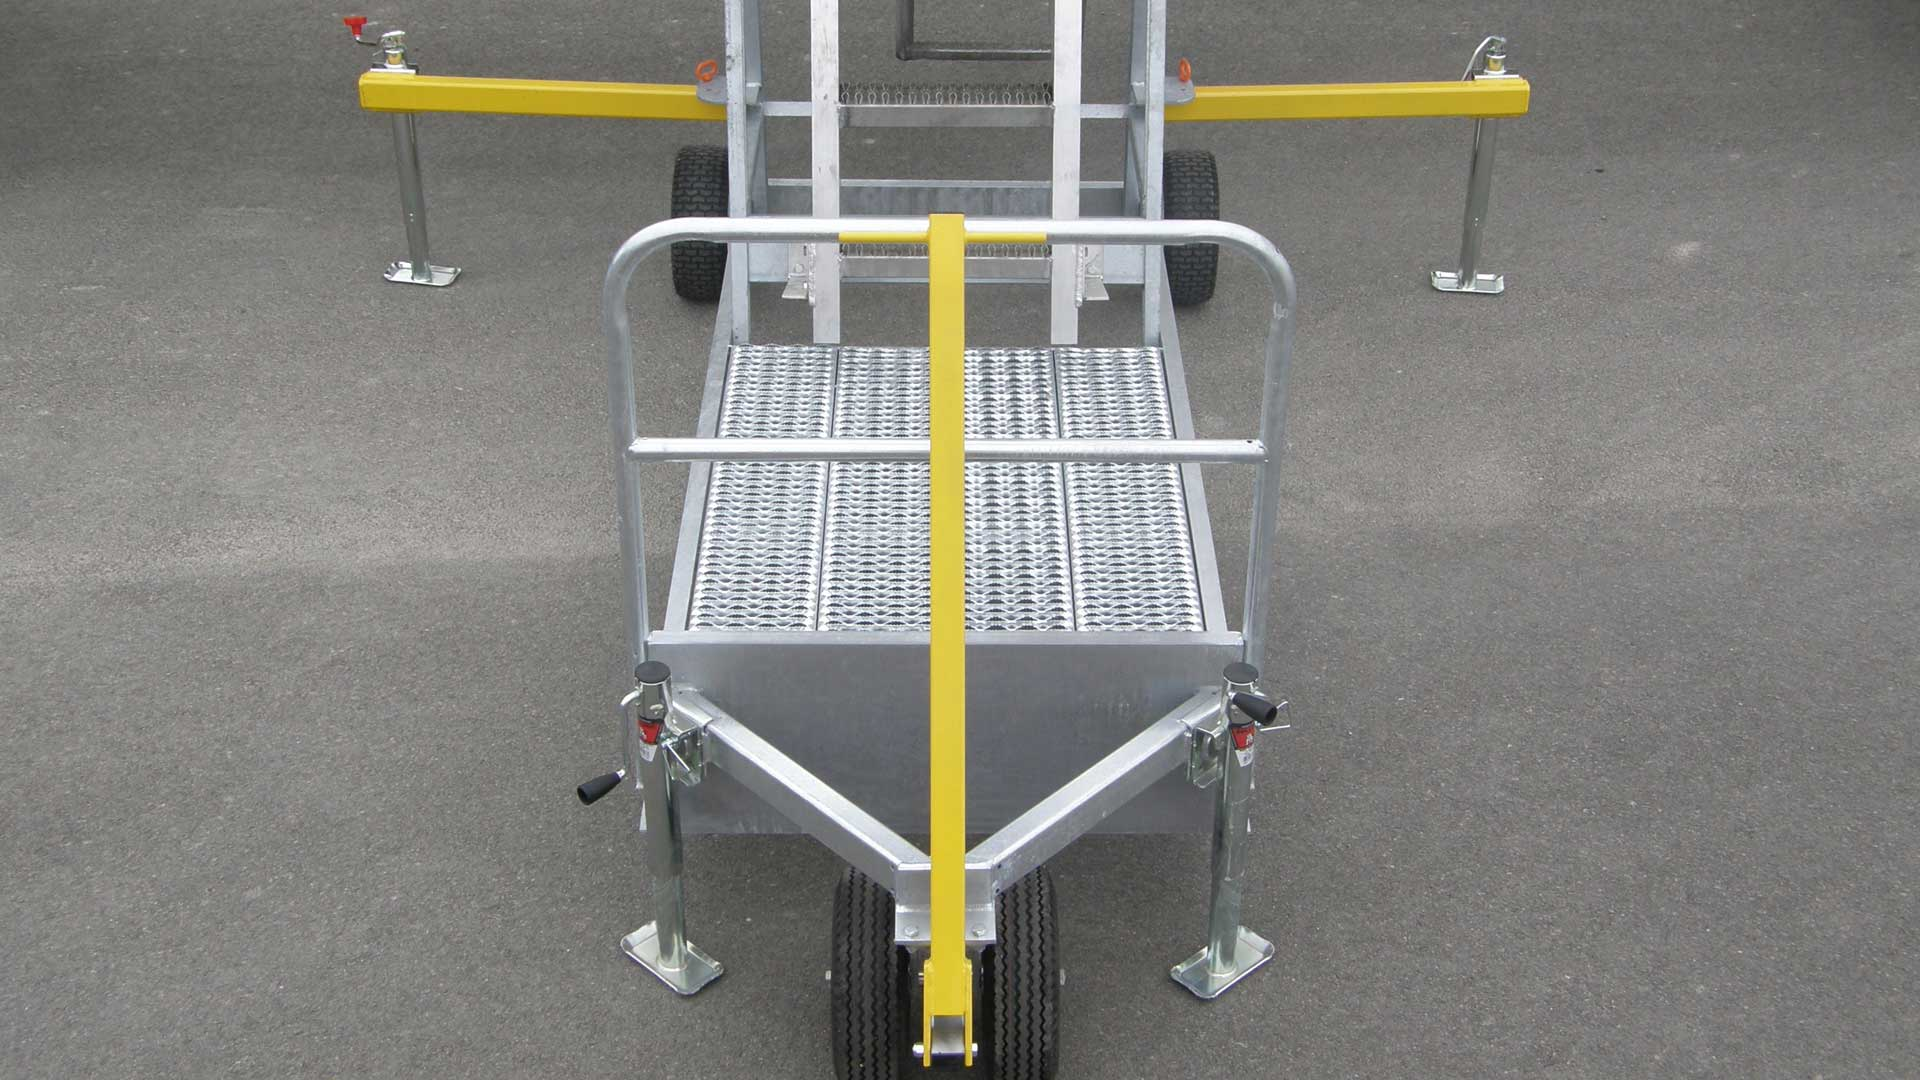 Folding outriggers and stabilizing jacks widen the support base for even more safety and a more stable platform to work from.  Serrated decking on platform provides a self-cleaning, Slip-resistant surface for improved safety.